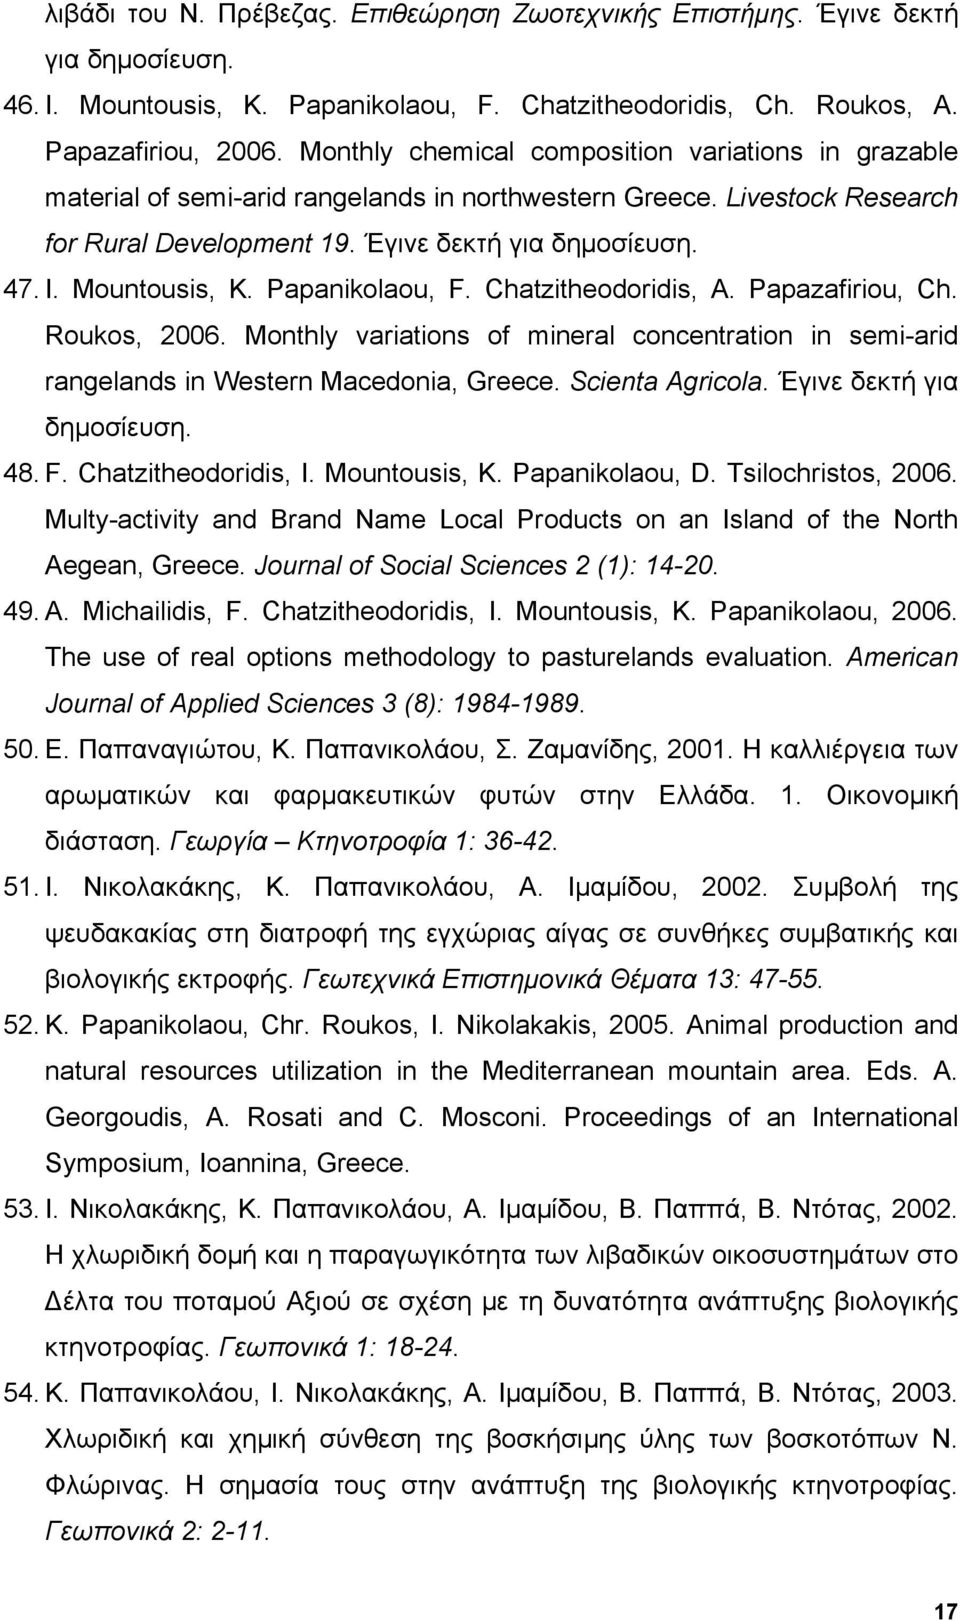 Mountousis, K. Papanikolaou, F. Chatzitheodoridis, A. Papazafiriou, Ch. Roukos, 2006. Monthly variations of mineral concentration in semi-arid rangelands in Western Macedonia, Greece.